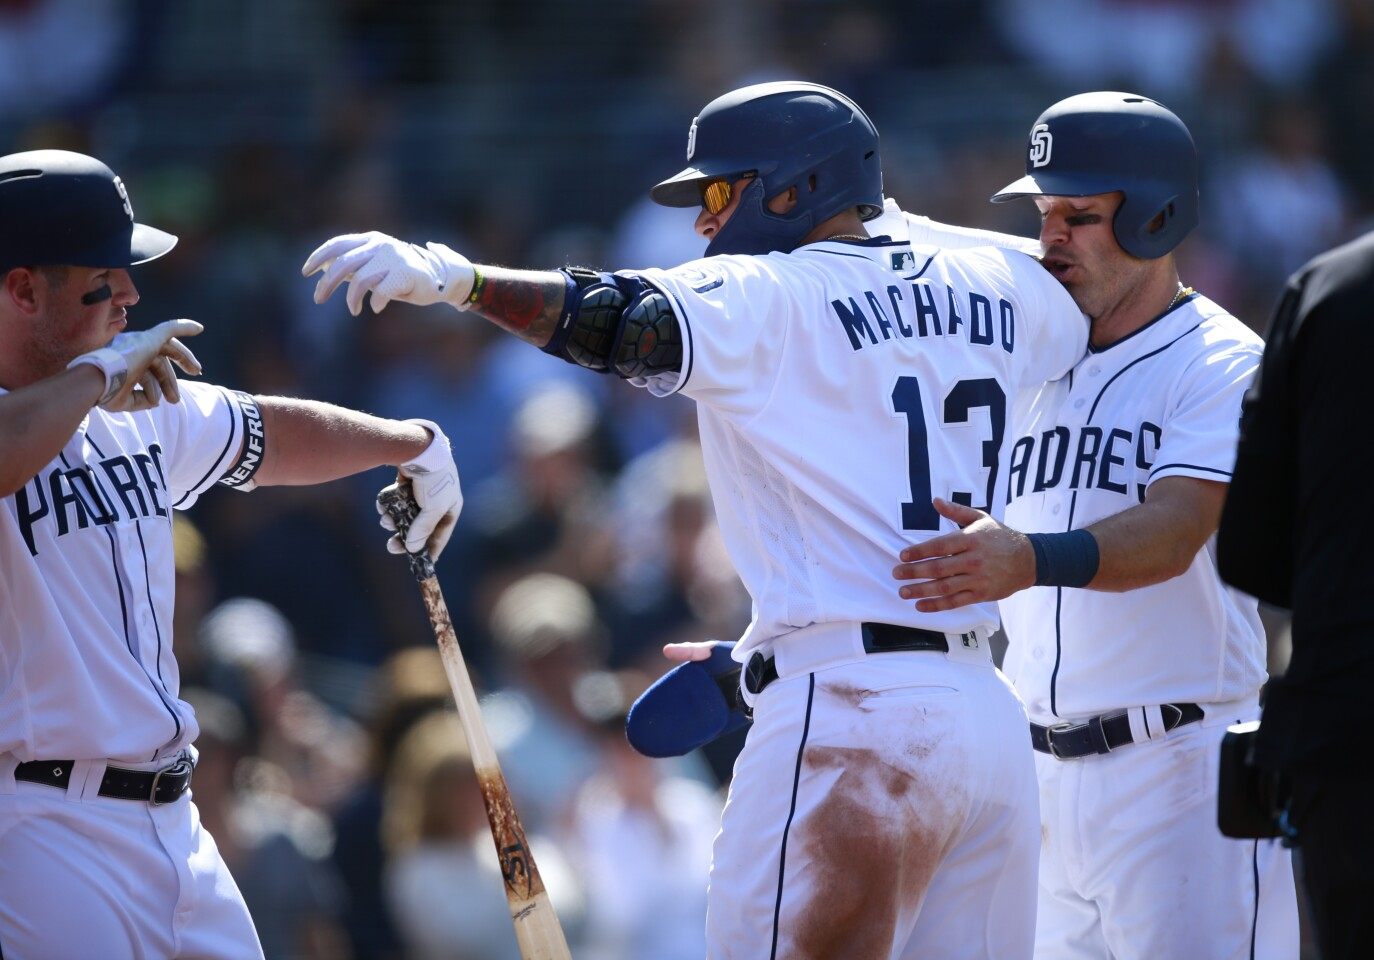 San Diego Padres Manny Machado celebrates his two-run home run in the 7th inning against the Arizona Diamondbacks at Petco Park in San Diego on April 3, 2019. (Photo by K.C. Alfred/The San Diego Union-Tribune)